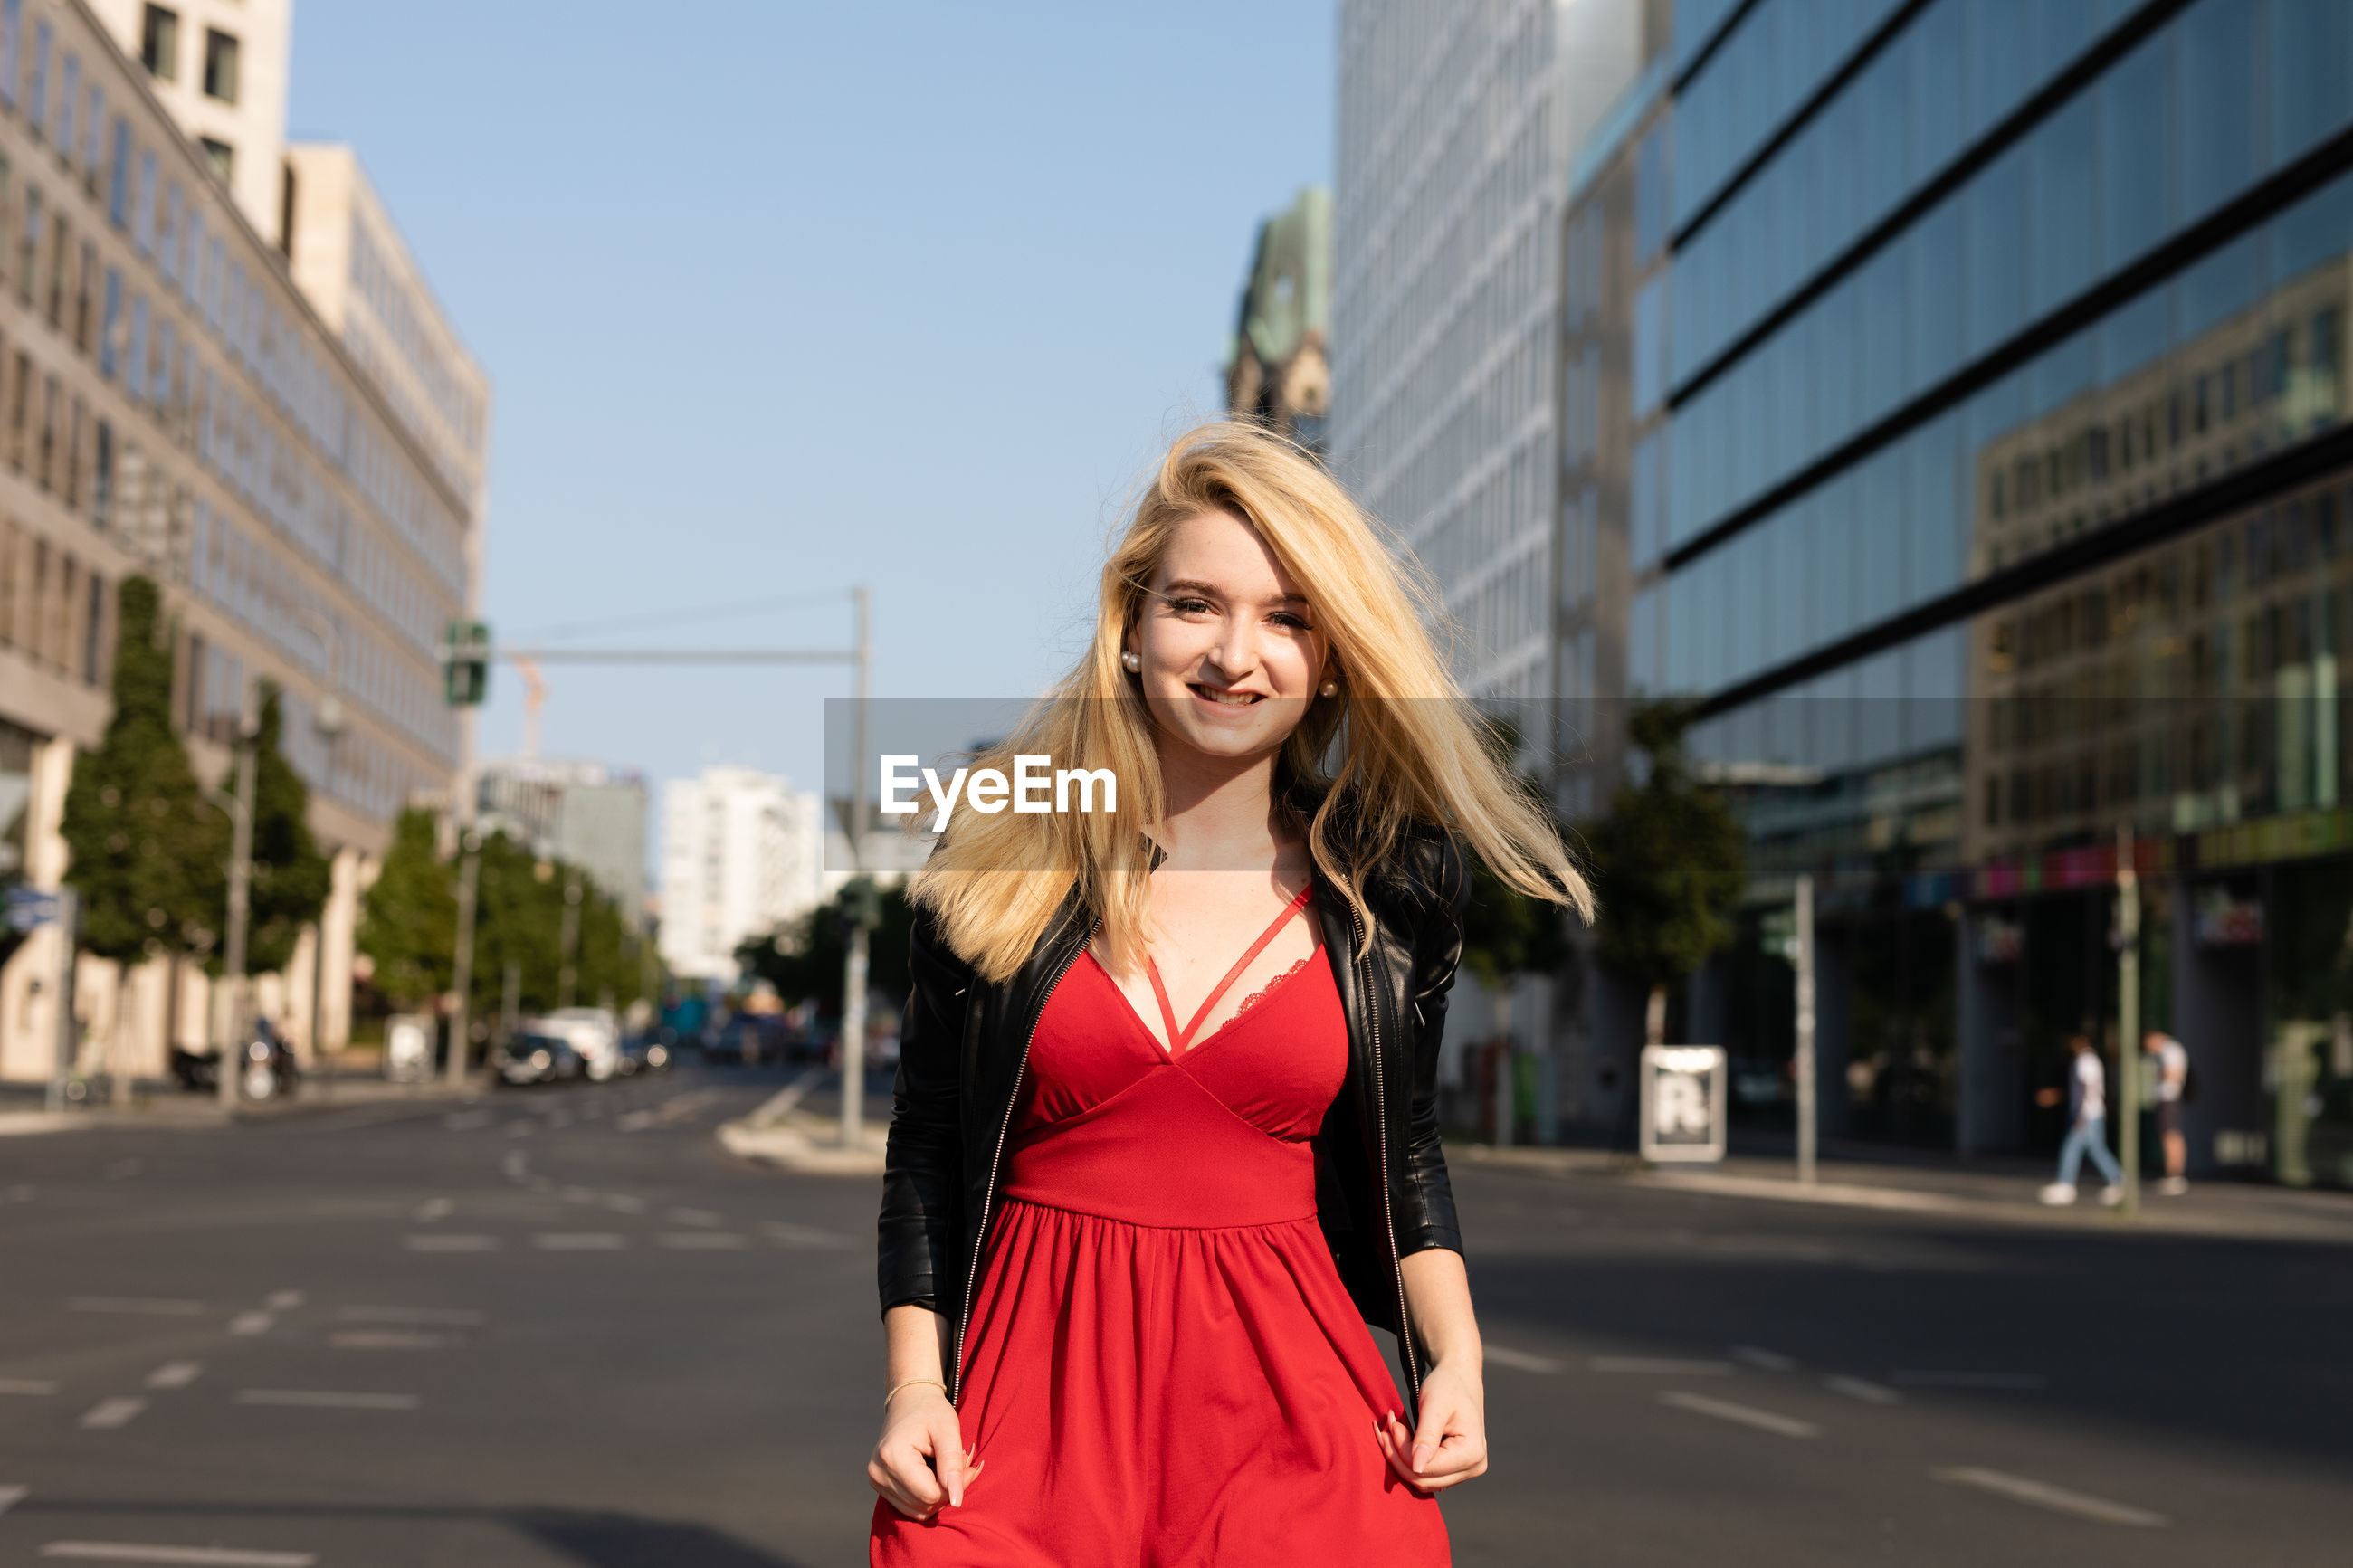 Portrait of smiling young woman standing on road in city